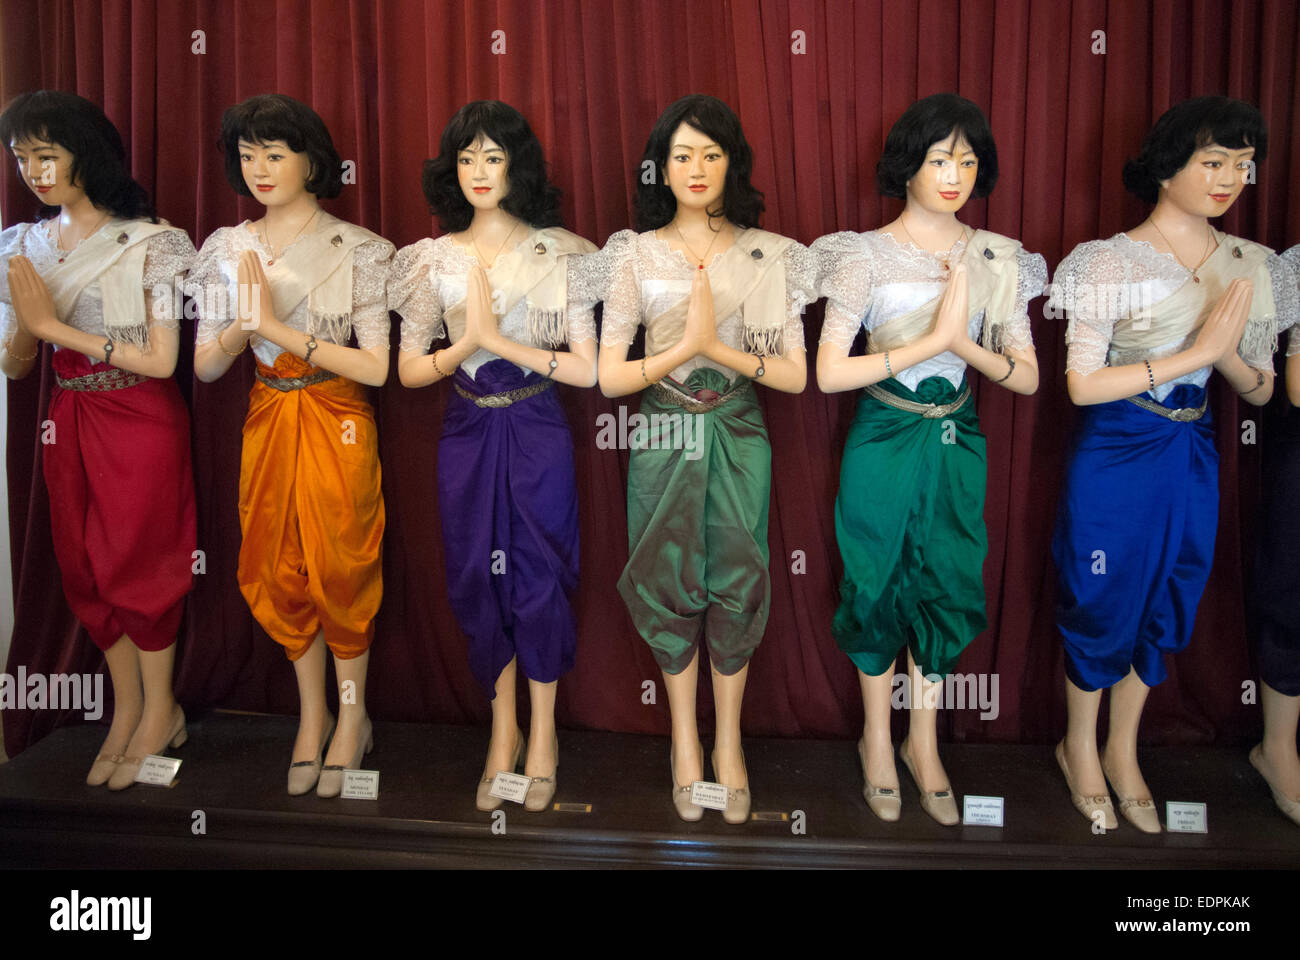 Palace royal phnom penh what to wear 2019